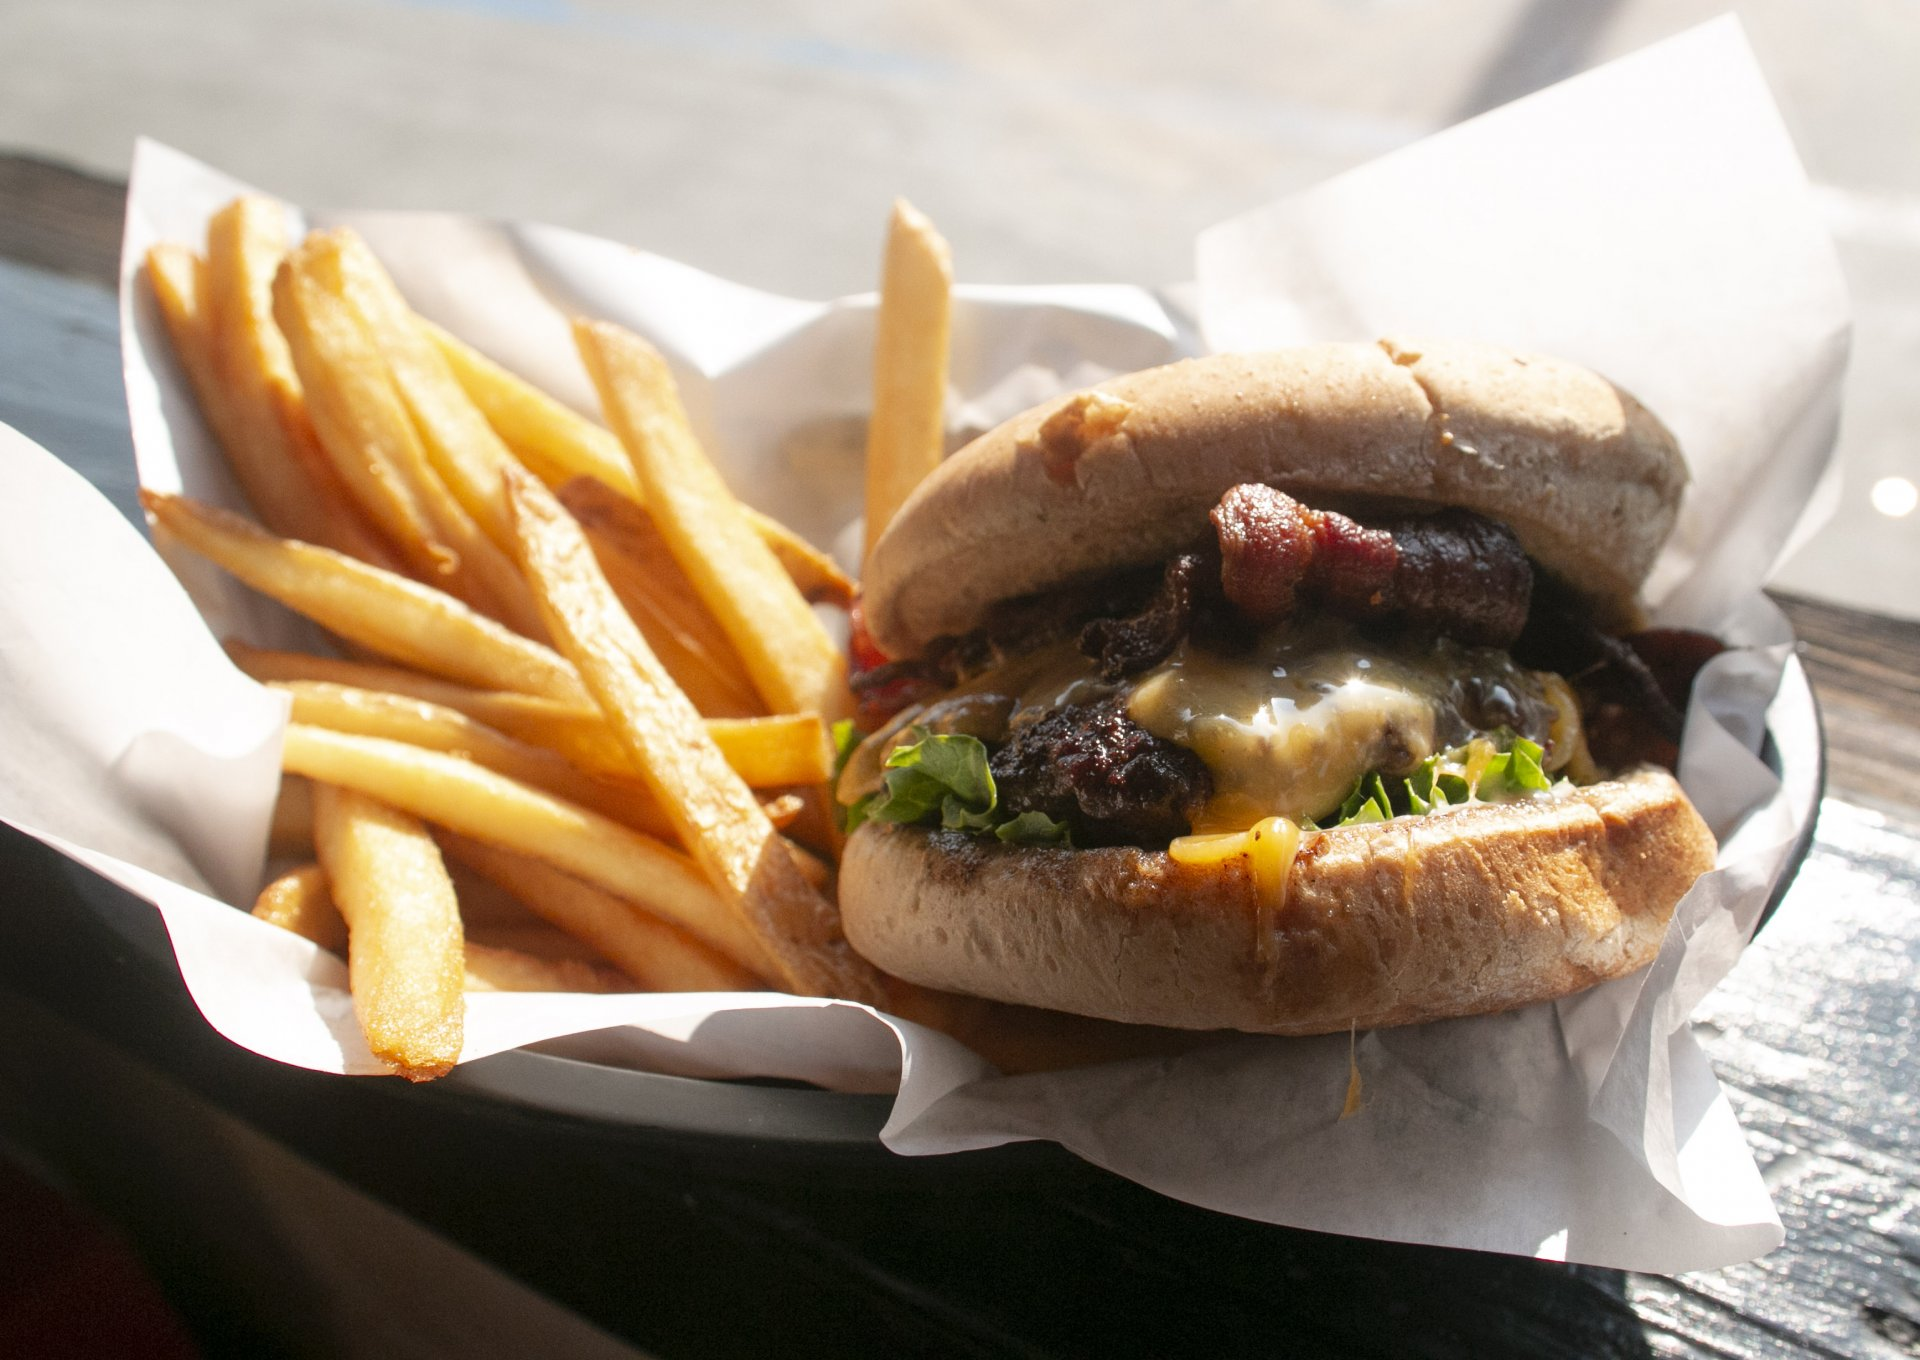 Bacon cheese burger from the restaurant Stars in Arcata. Photo credit: Bailey Tennery